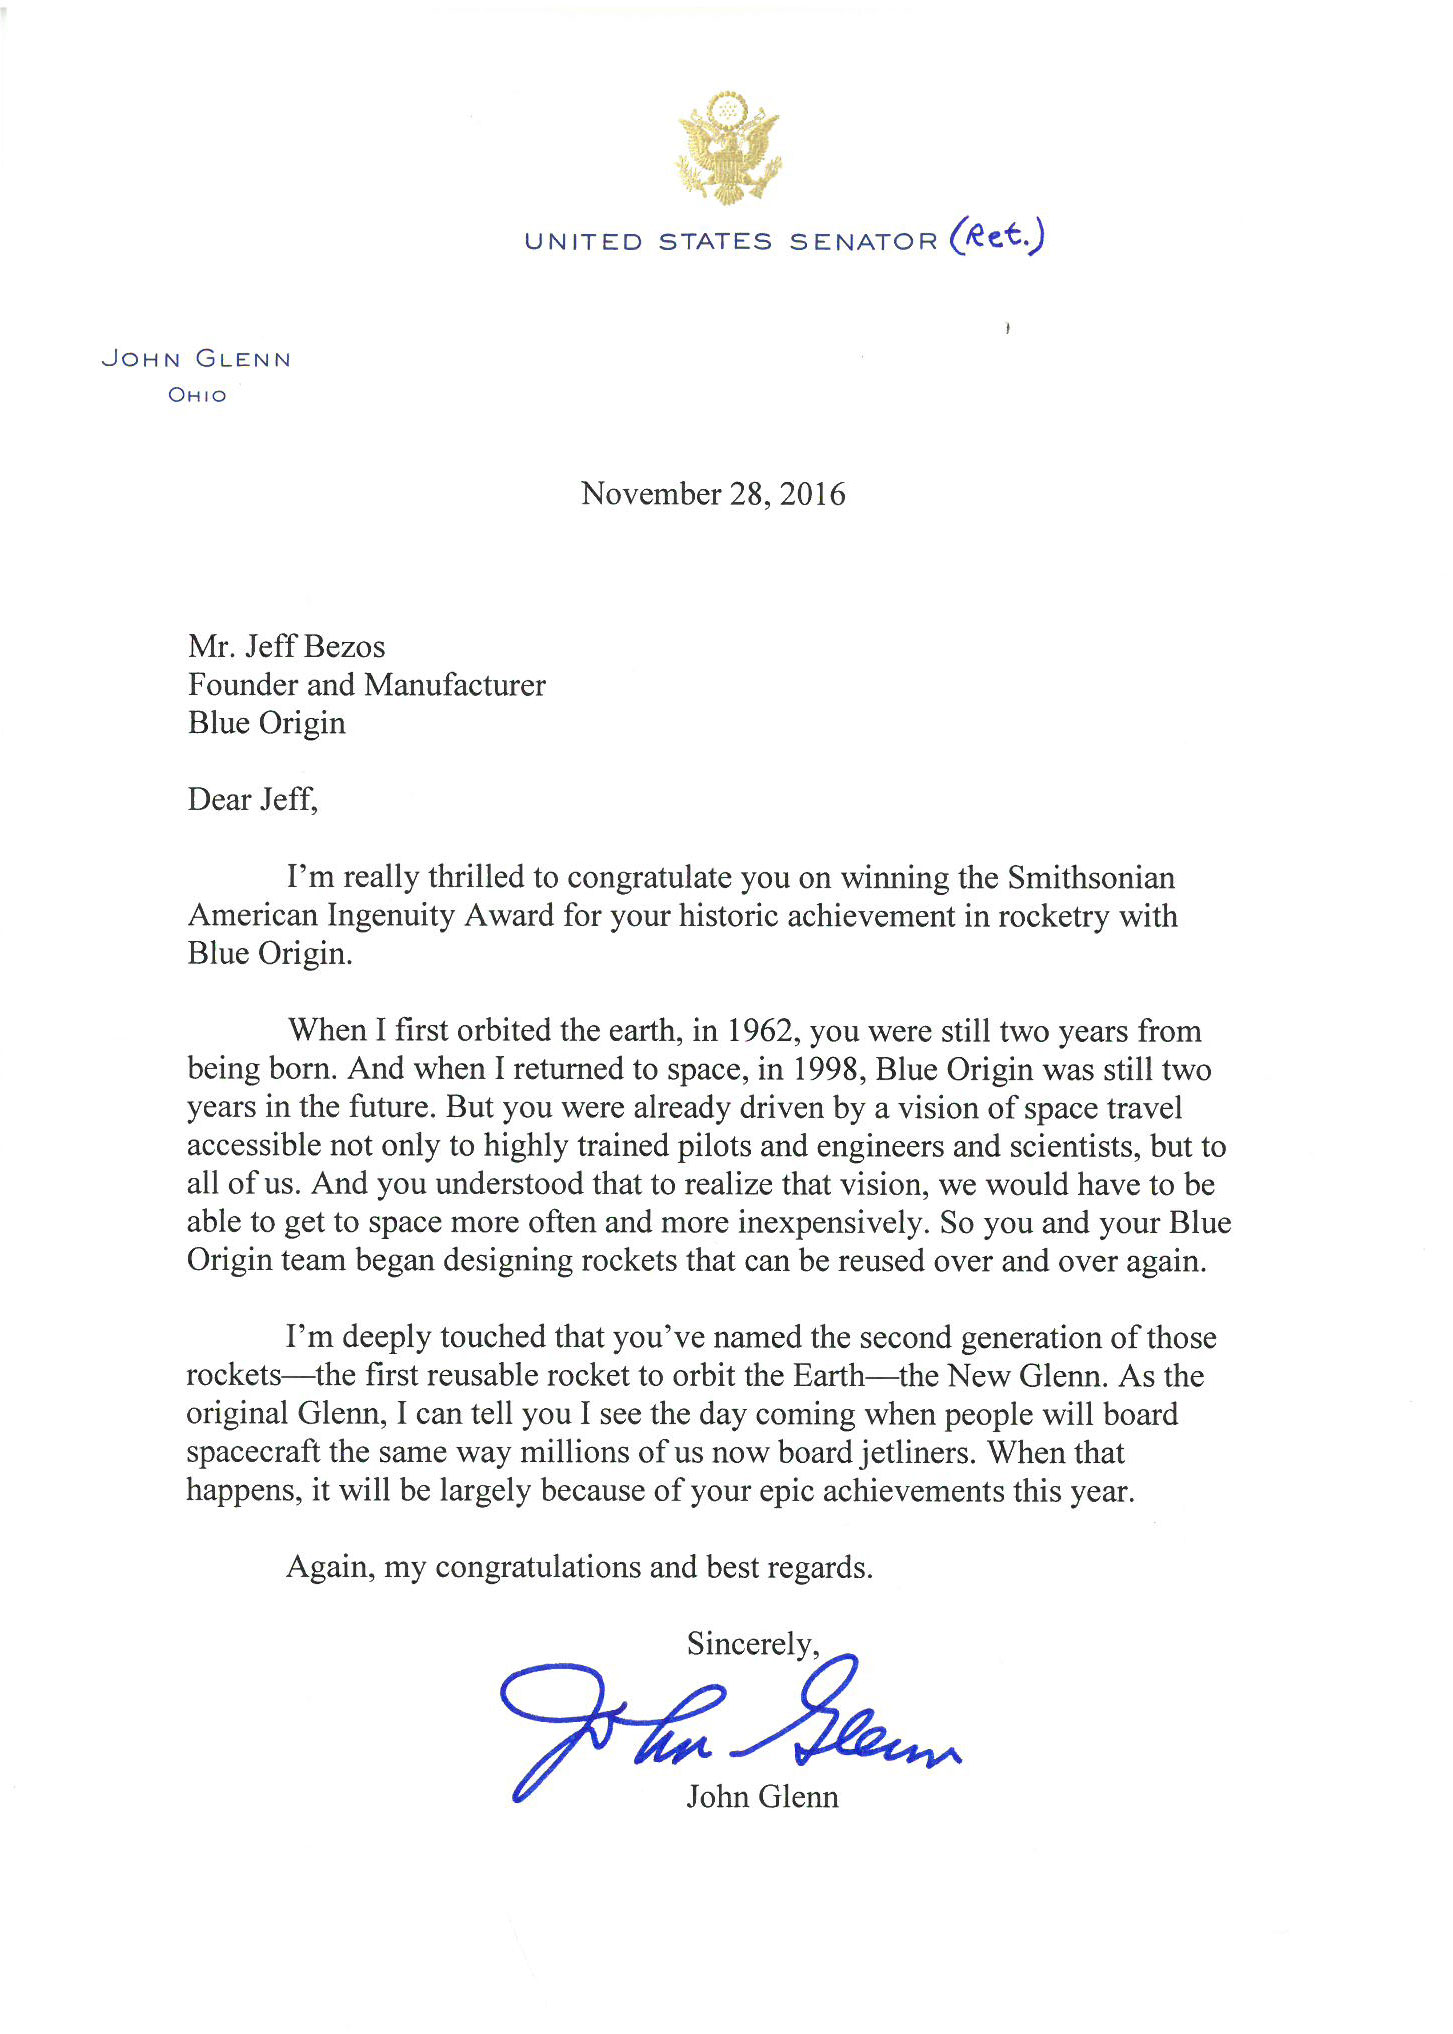 Read The Letter Written By John Glenn To Honor Jeff Bezos For Blue